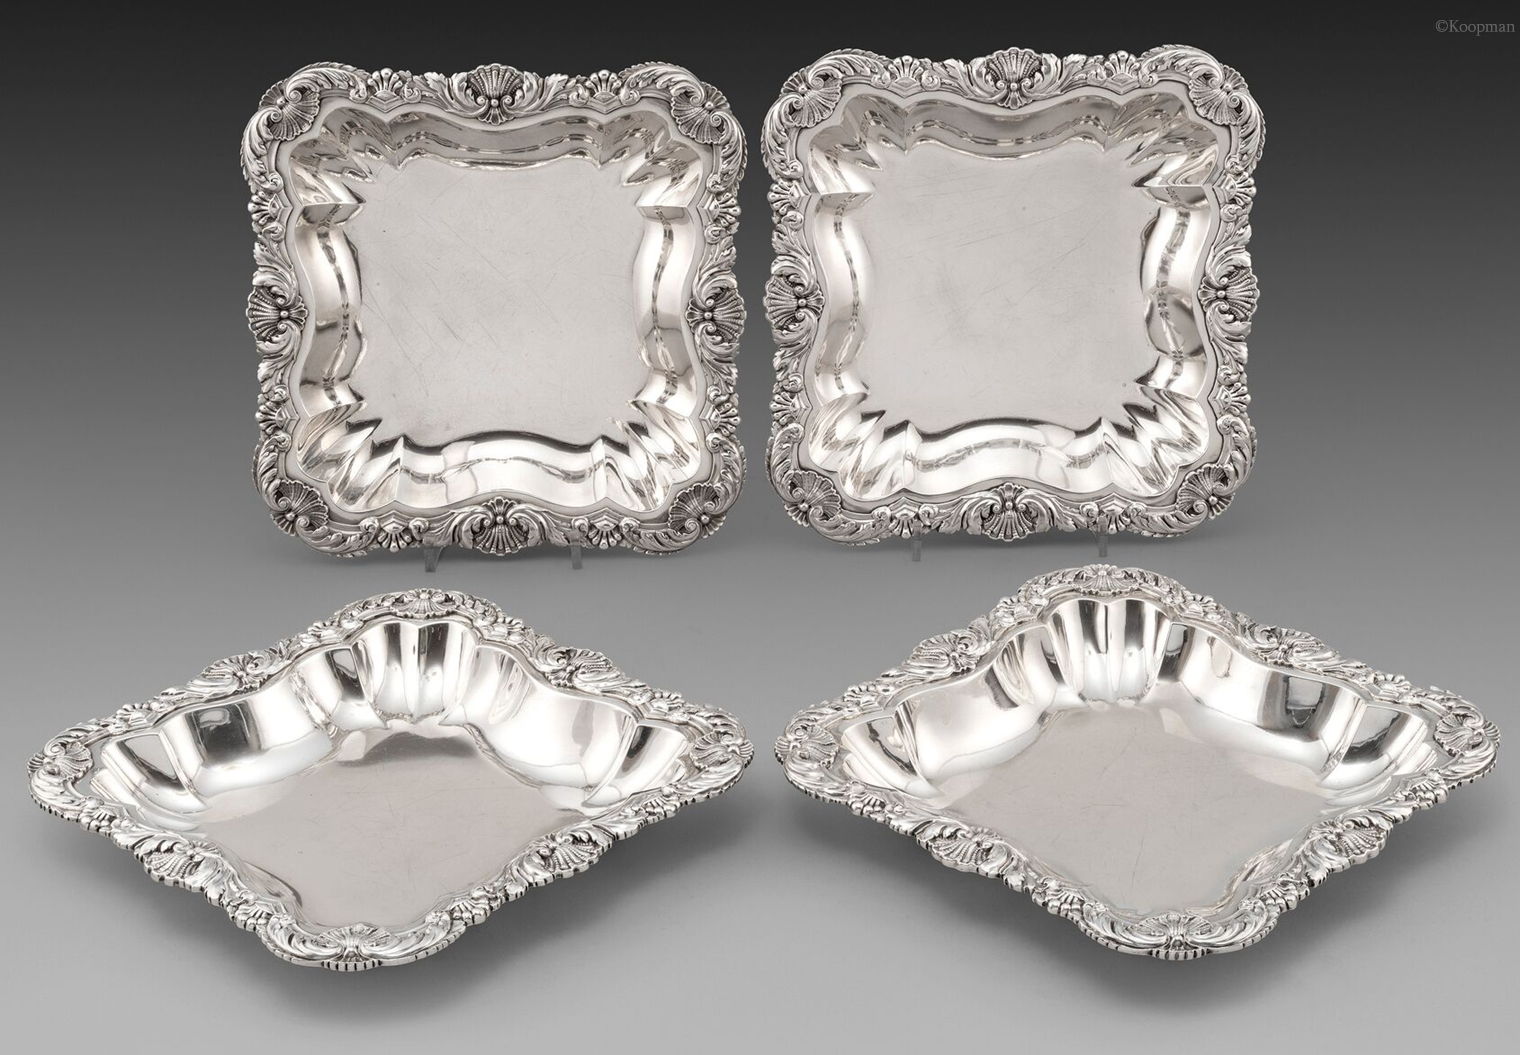 The Earl of Shaftsbury's Serving Dishes